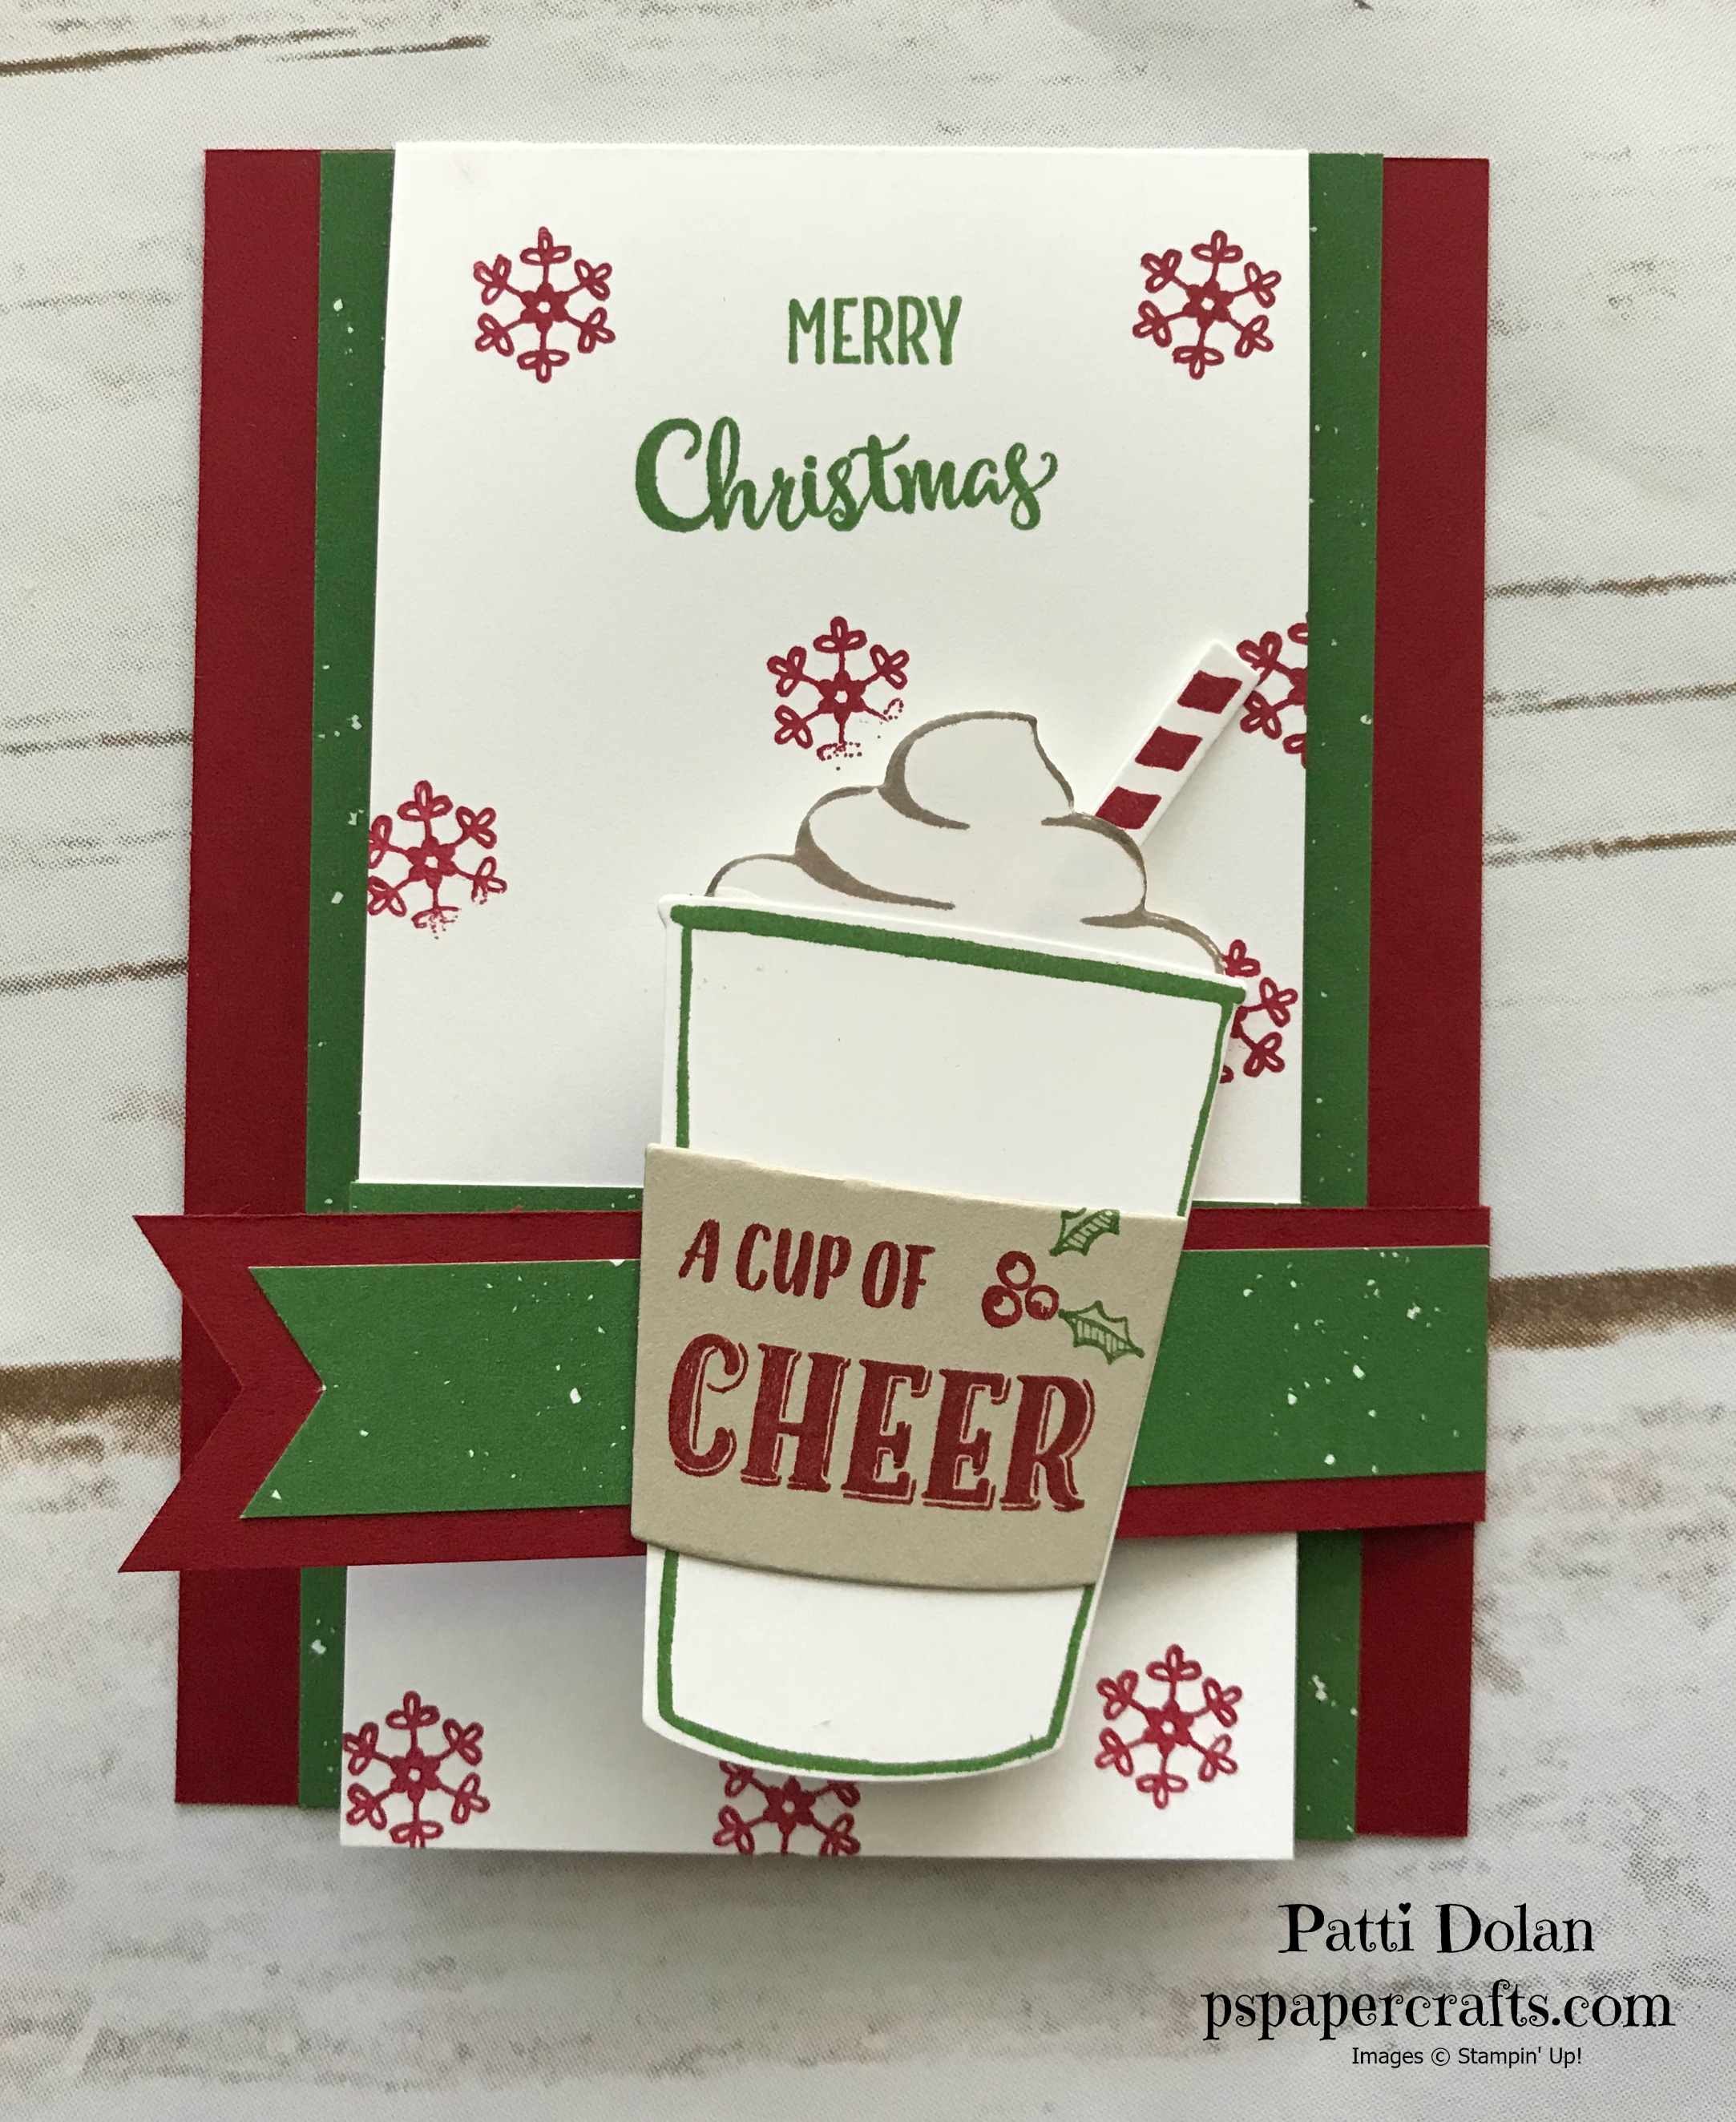 Merry Cafe Christmas Card with Gift Card Holder Single2.jpg